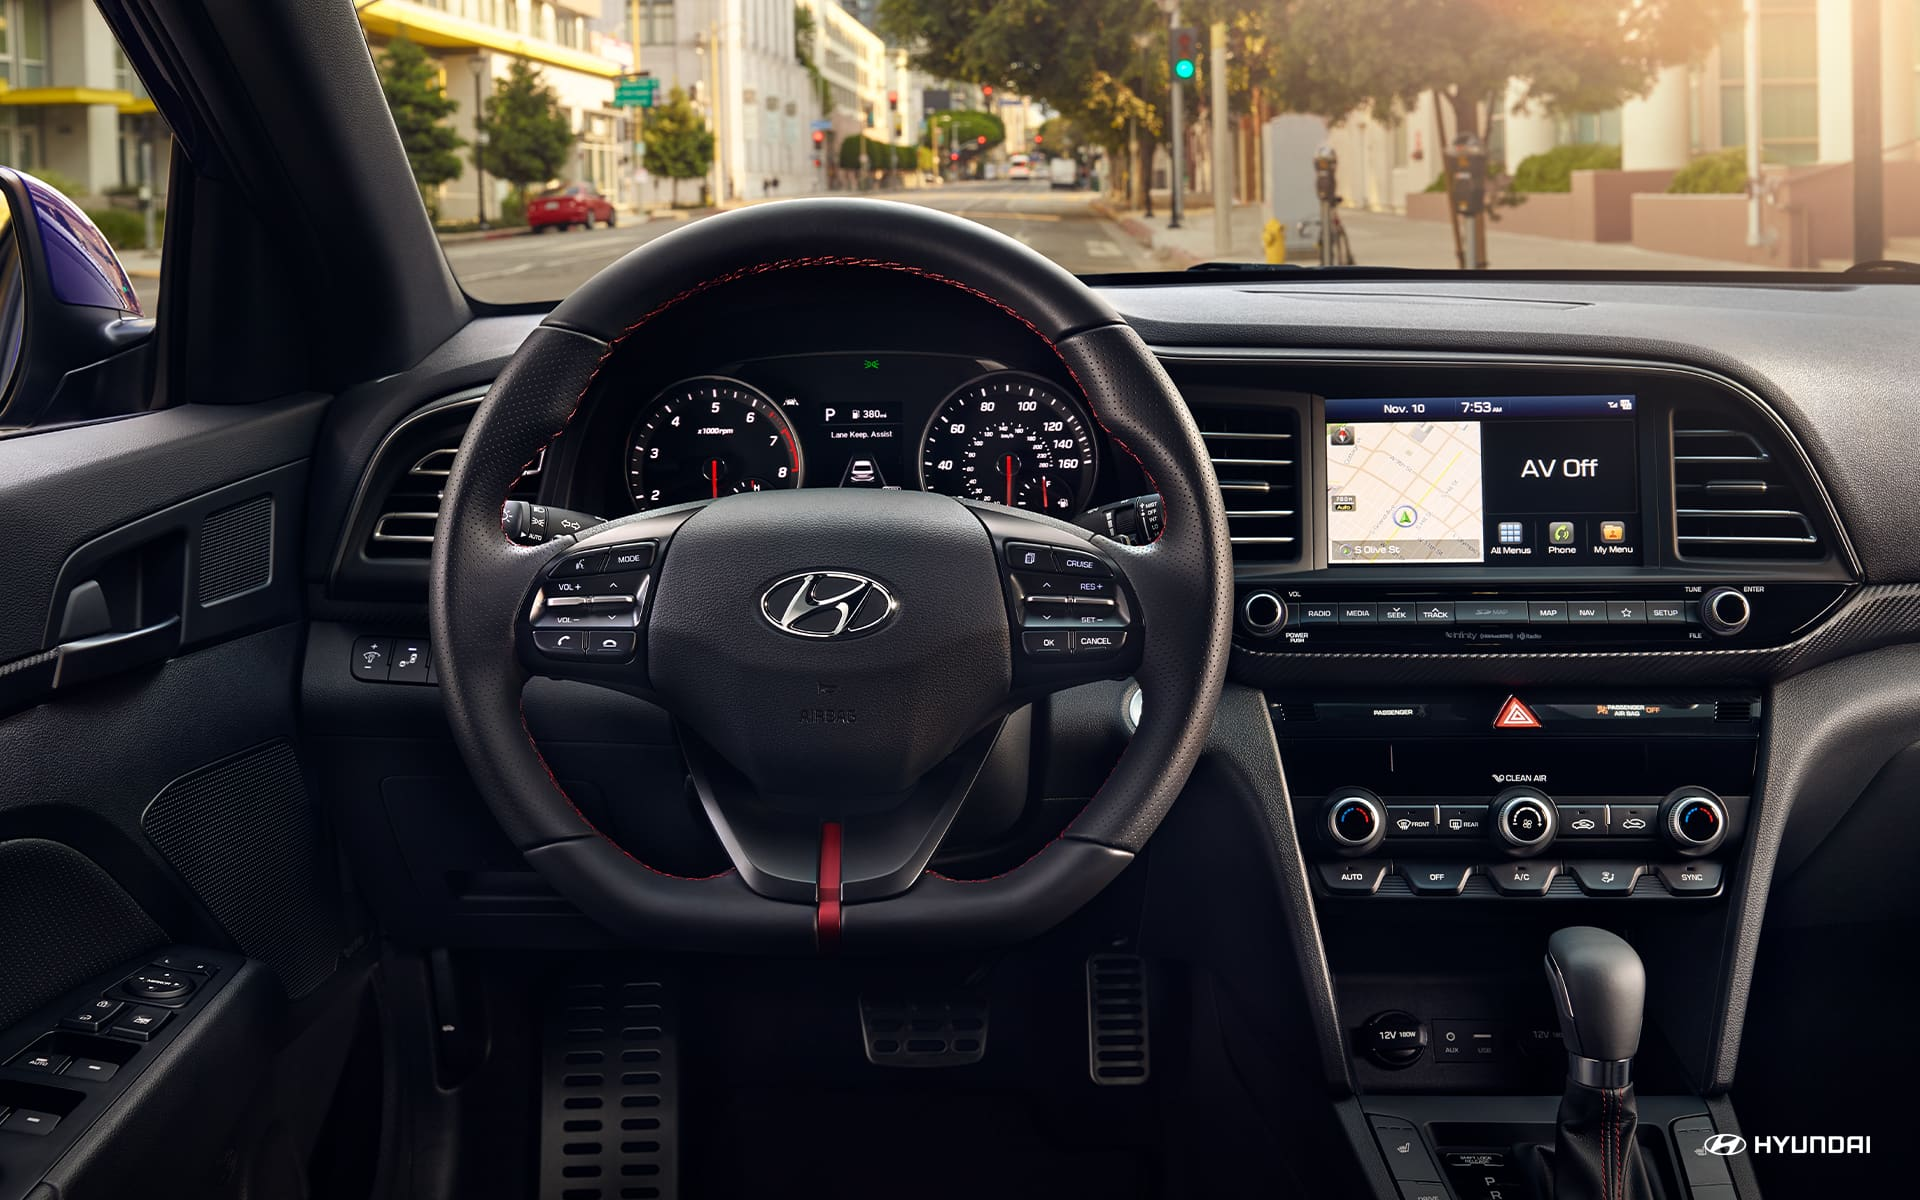 Technology in the 2020 Elantra